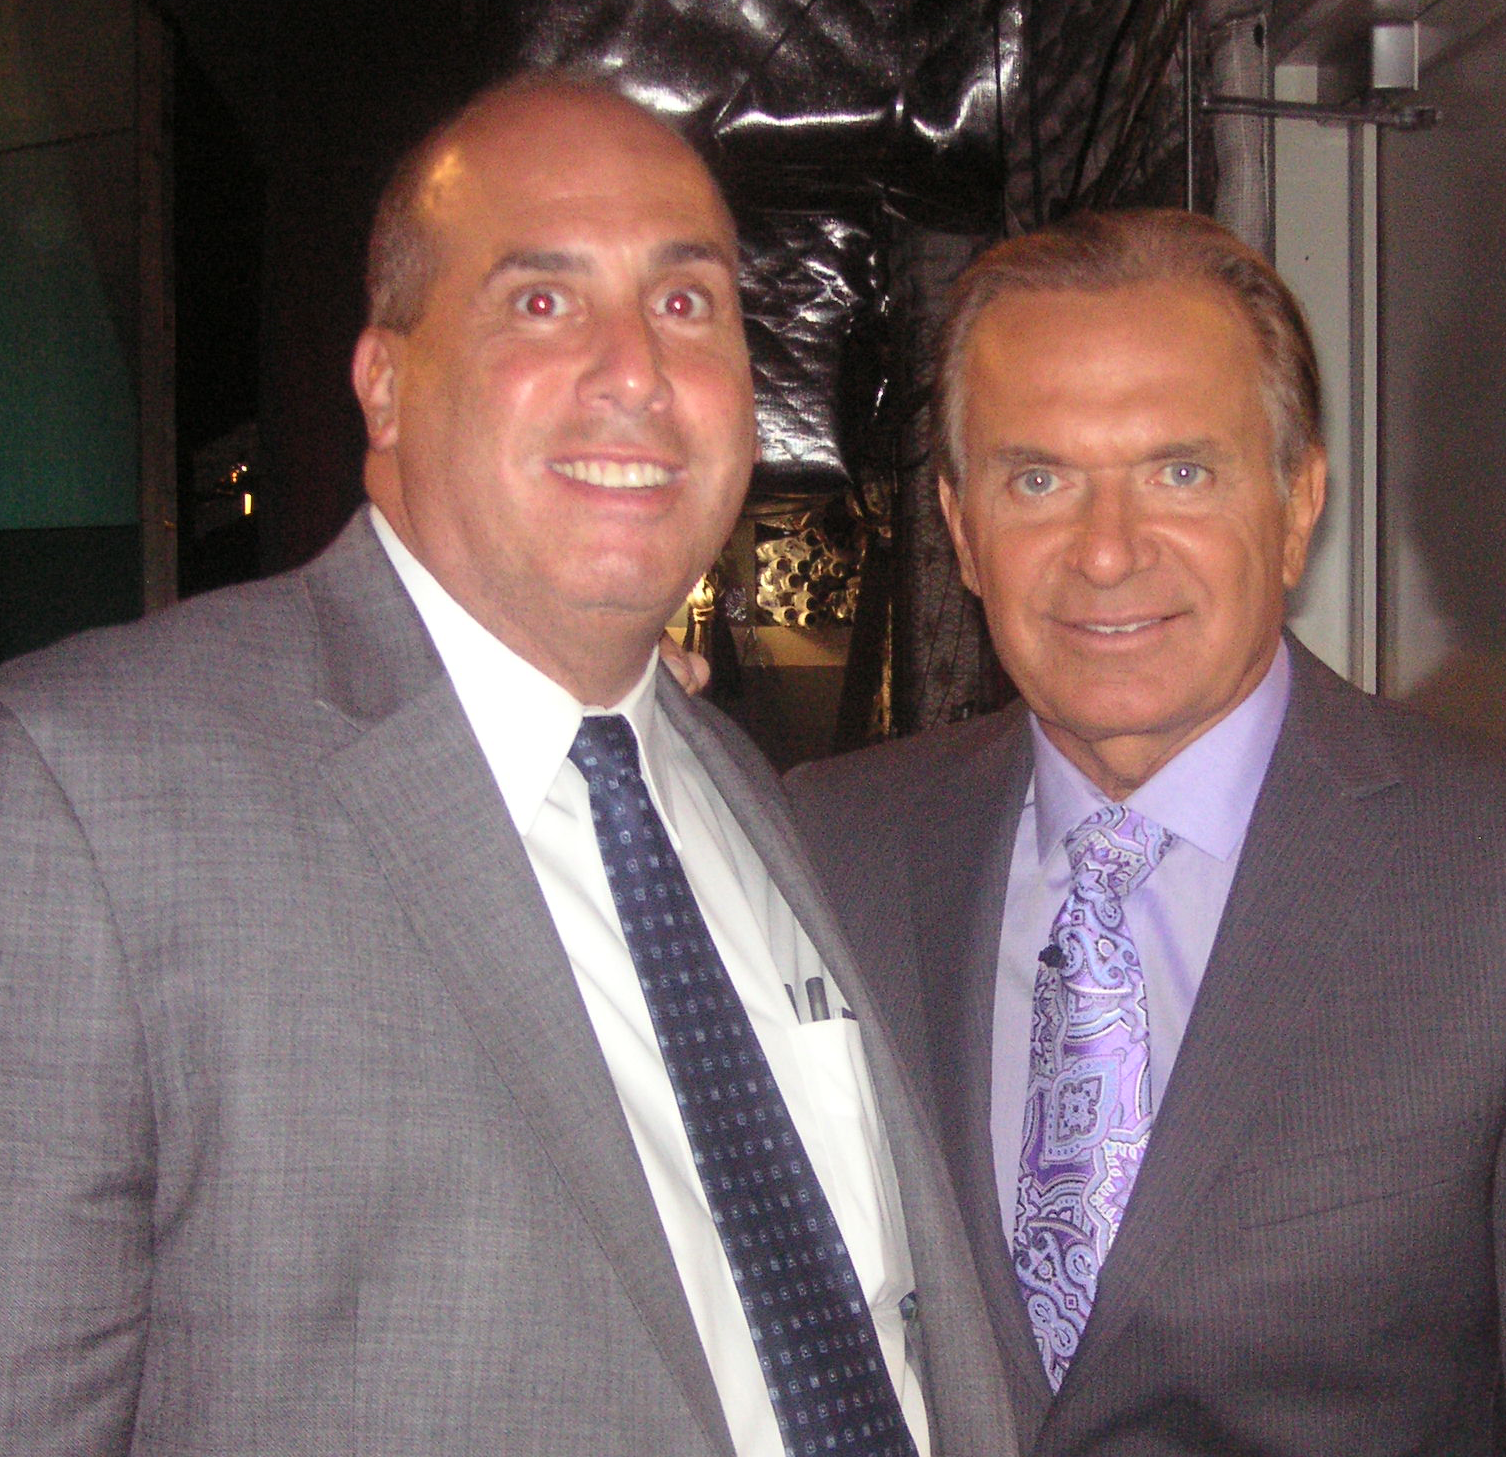 ECOP President Lawrence J. Benenati and Dr. Drew Ordon